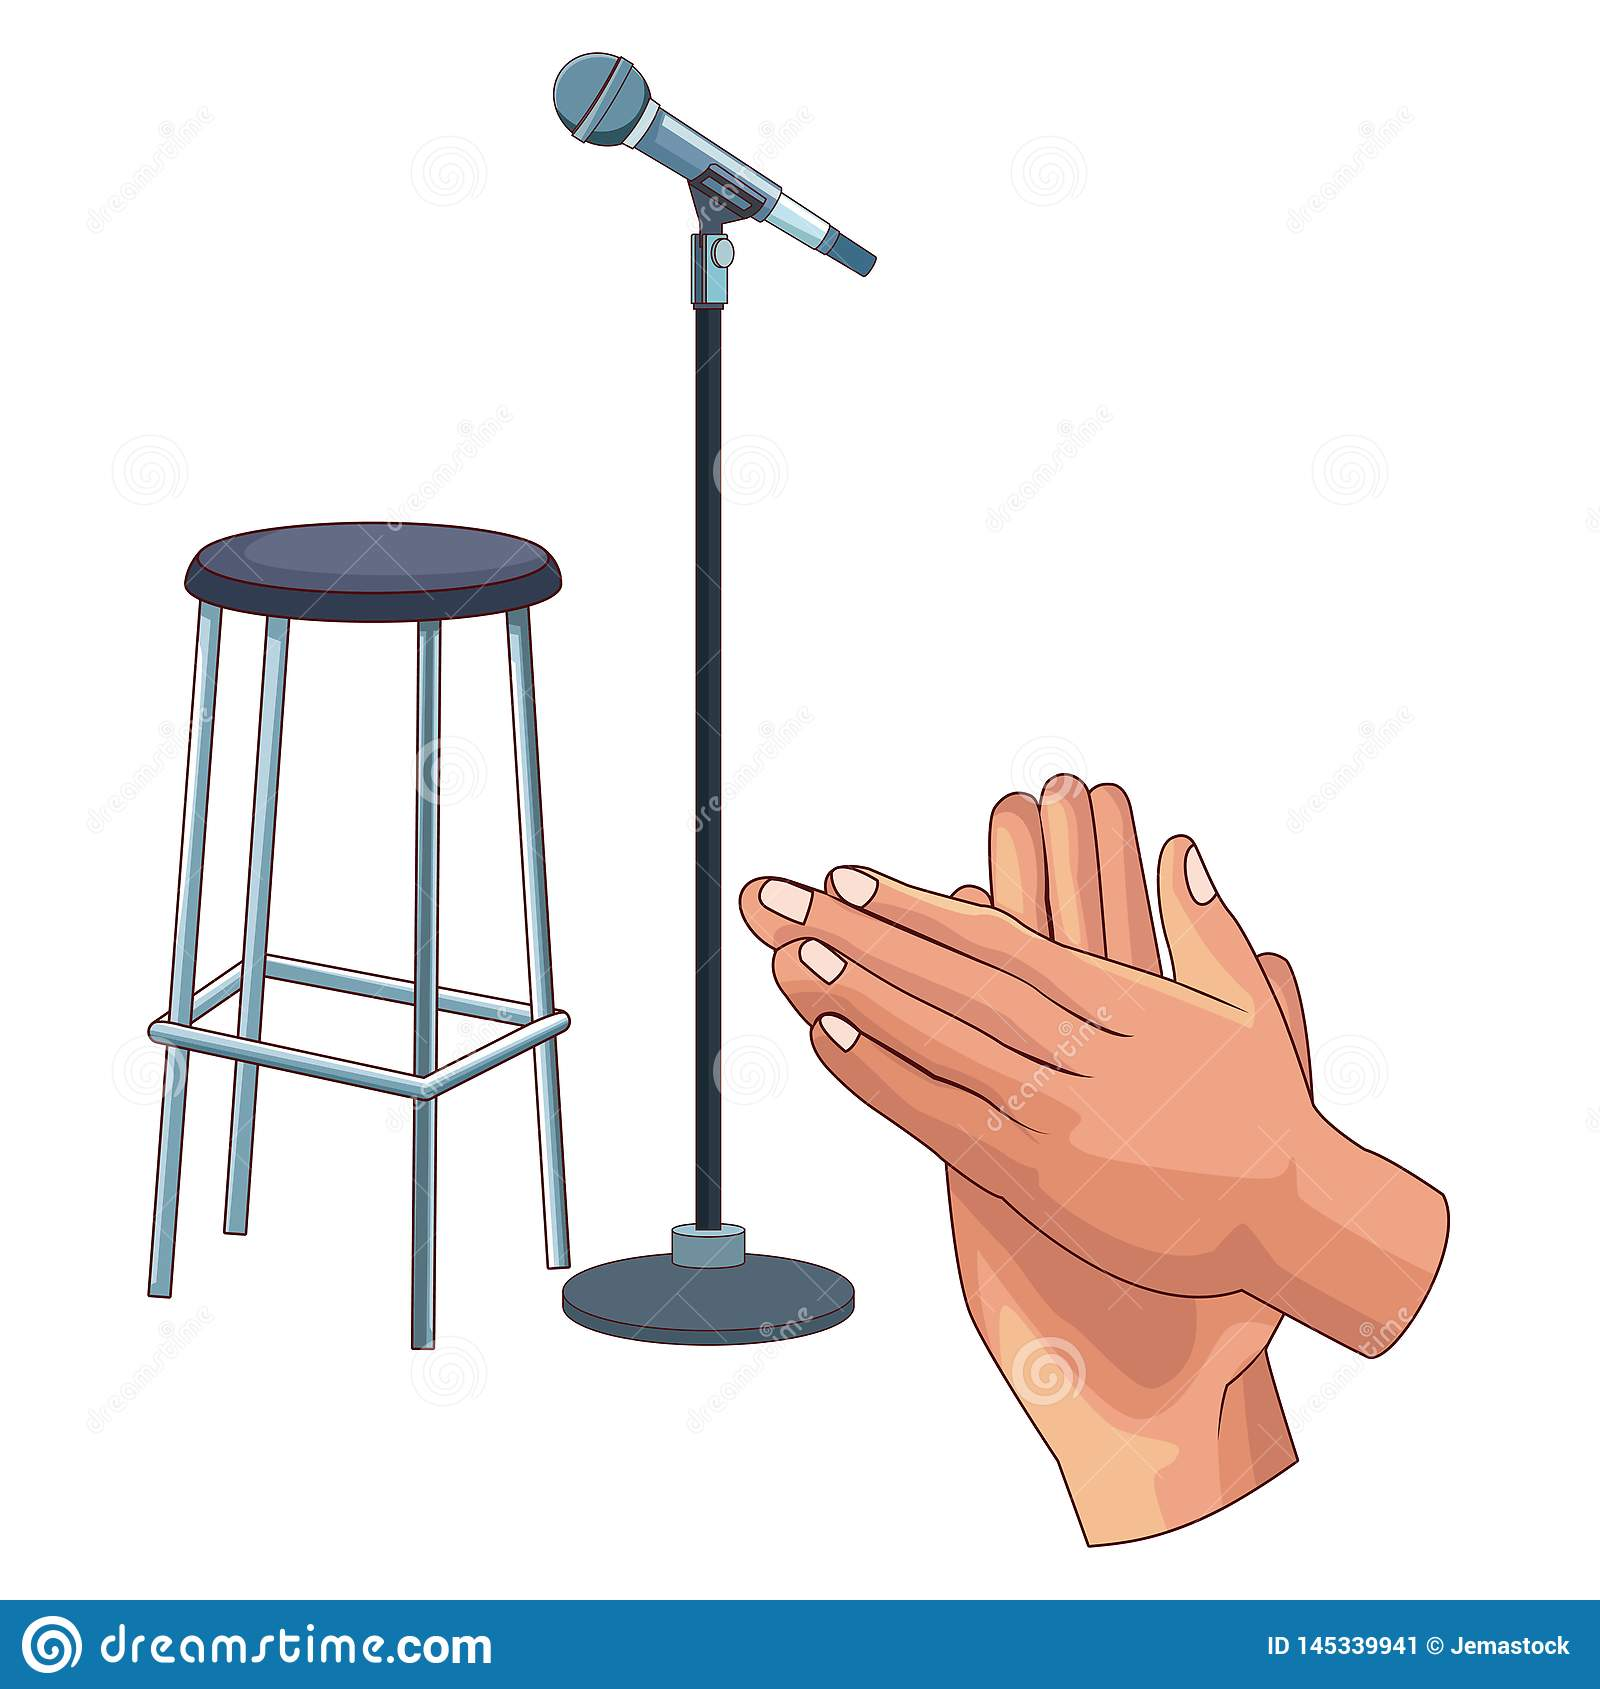 Microphone and chair